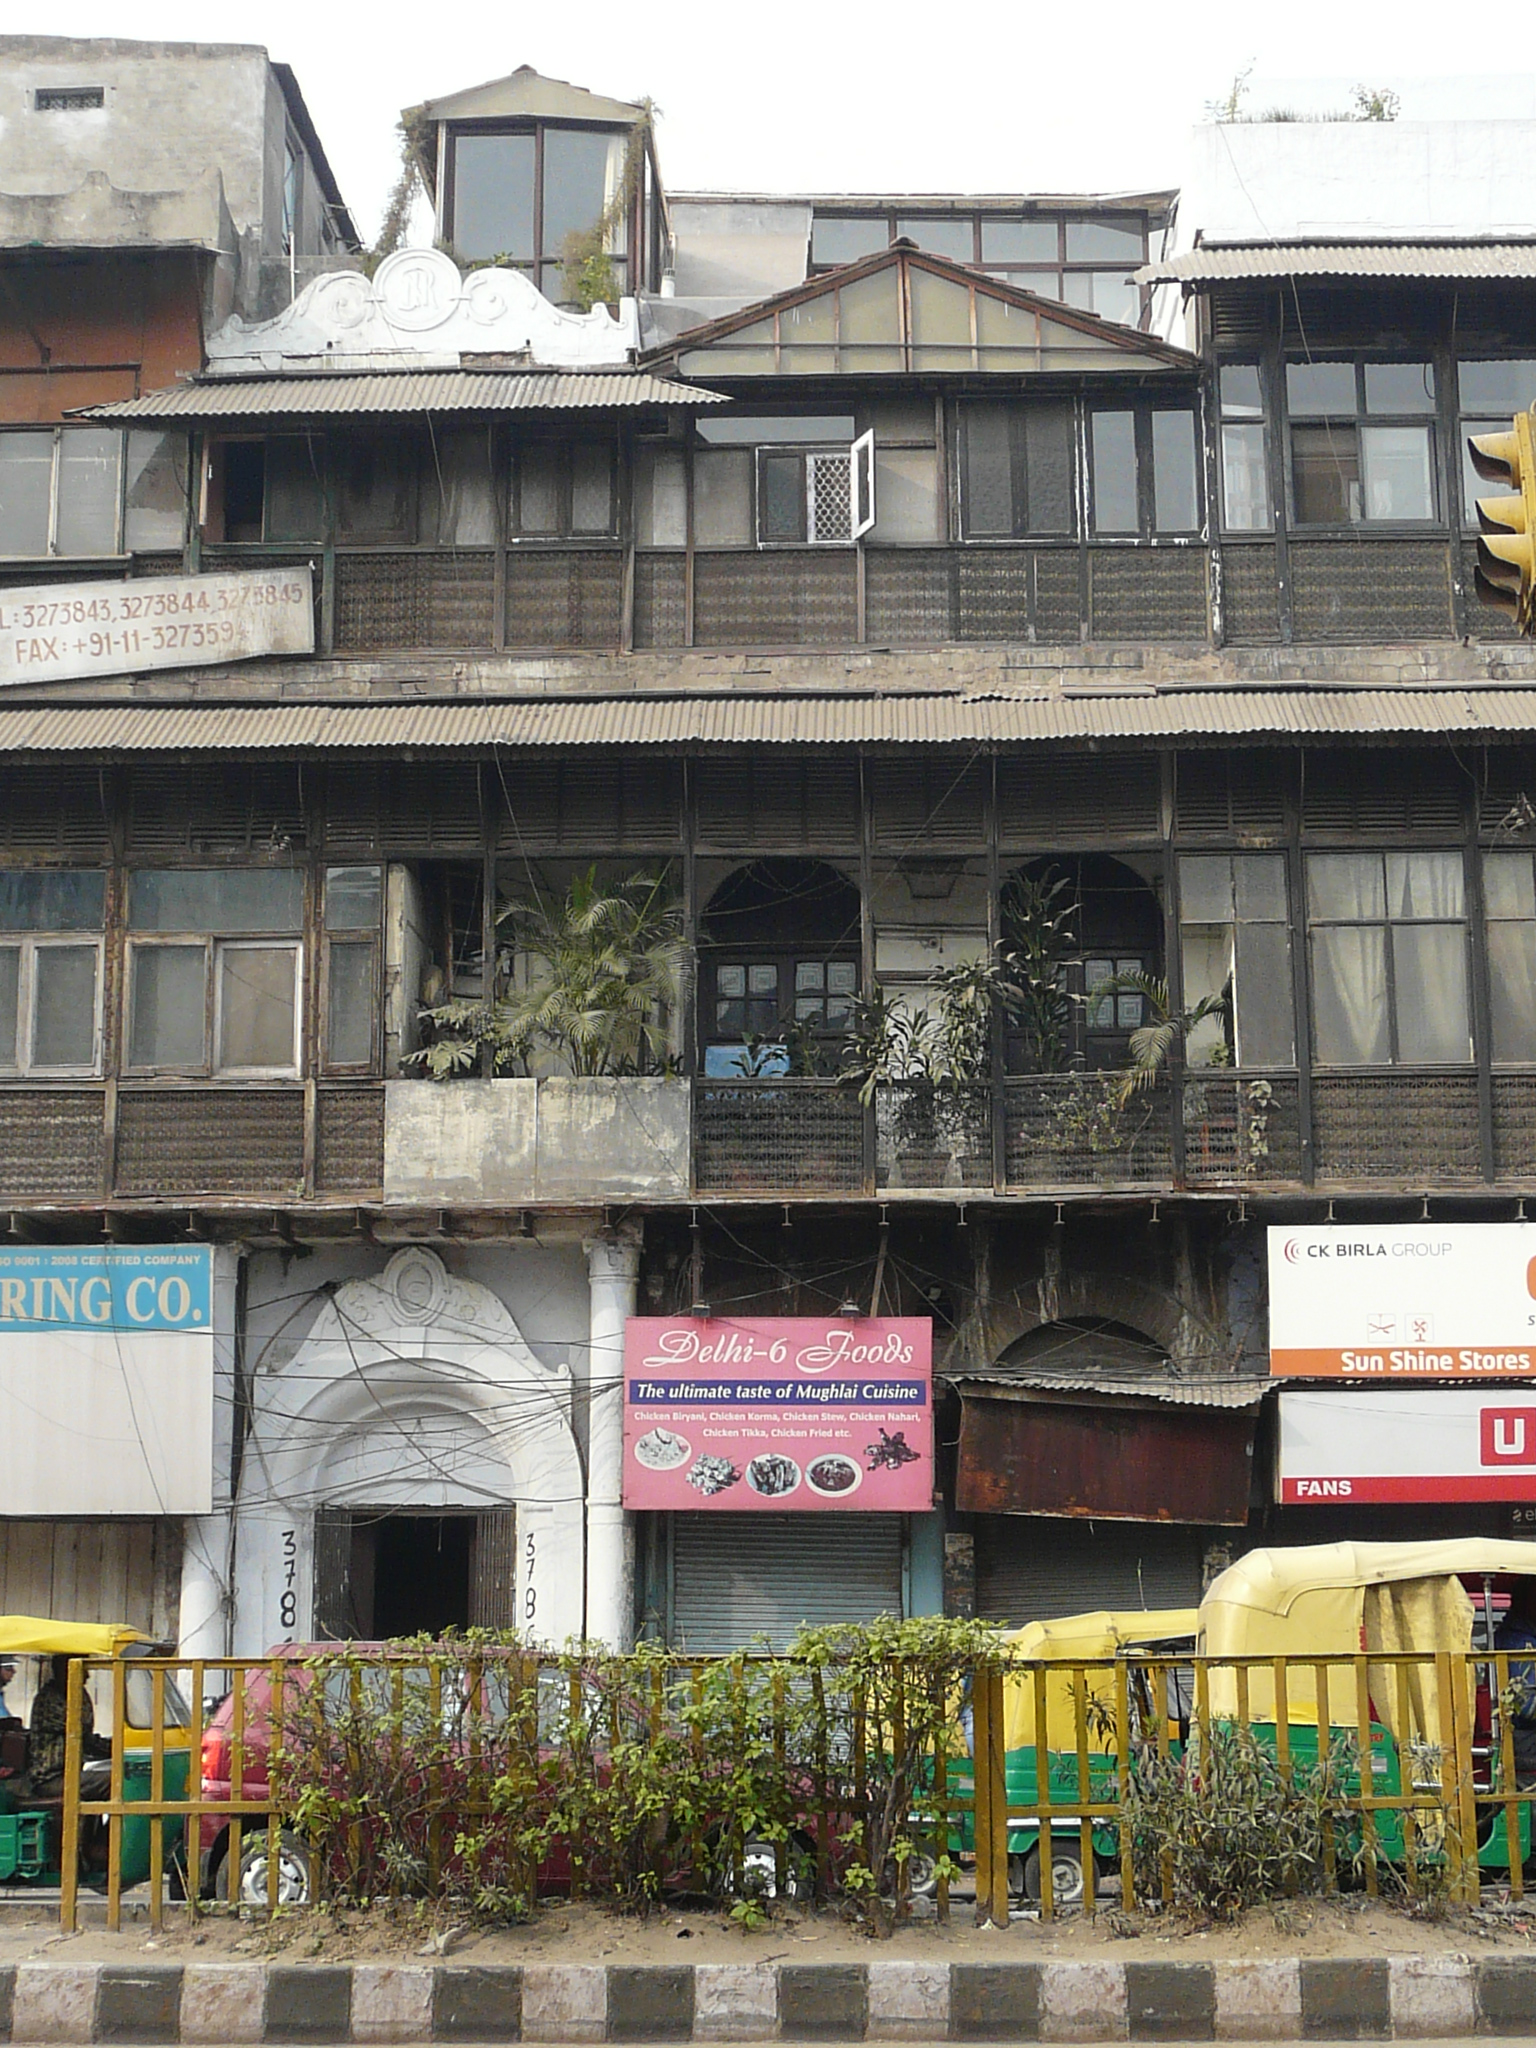 Commercial building design commercial building subhash - 01 01 Daryaganj A Comparatively More Recent Building